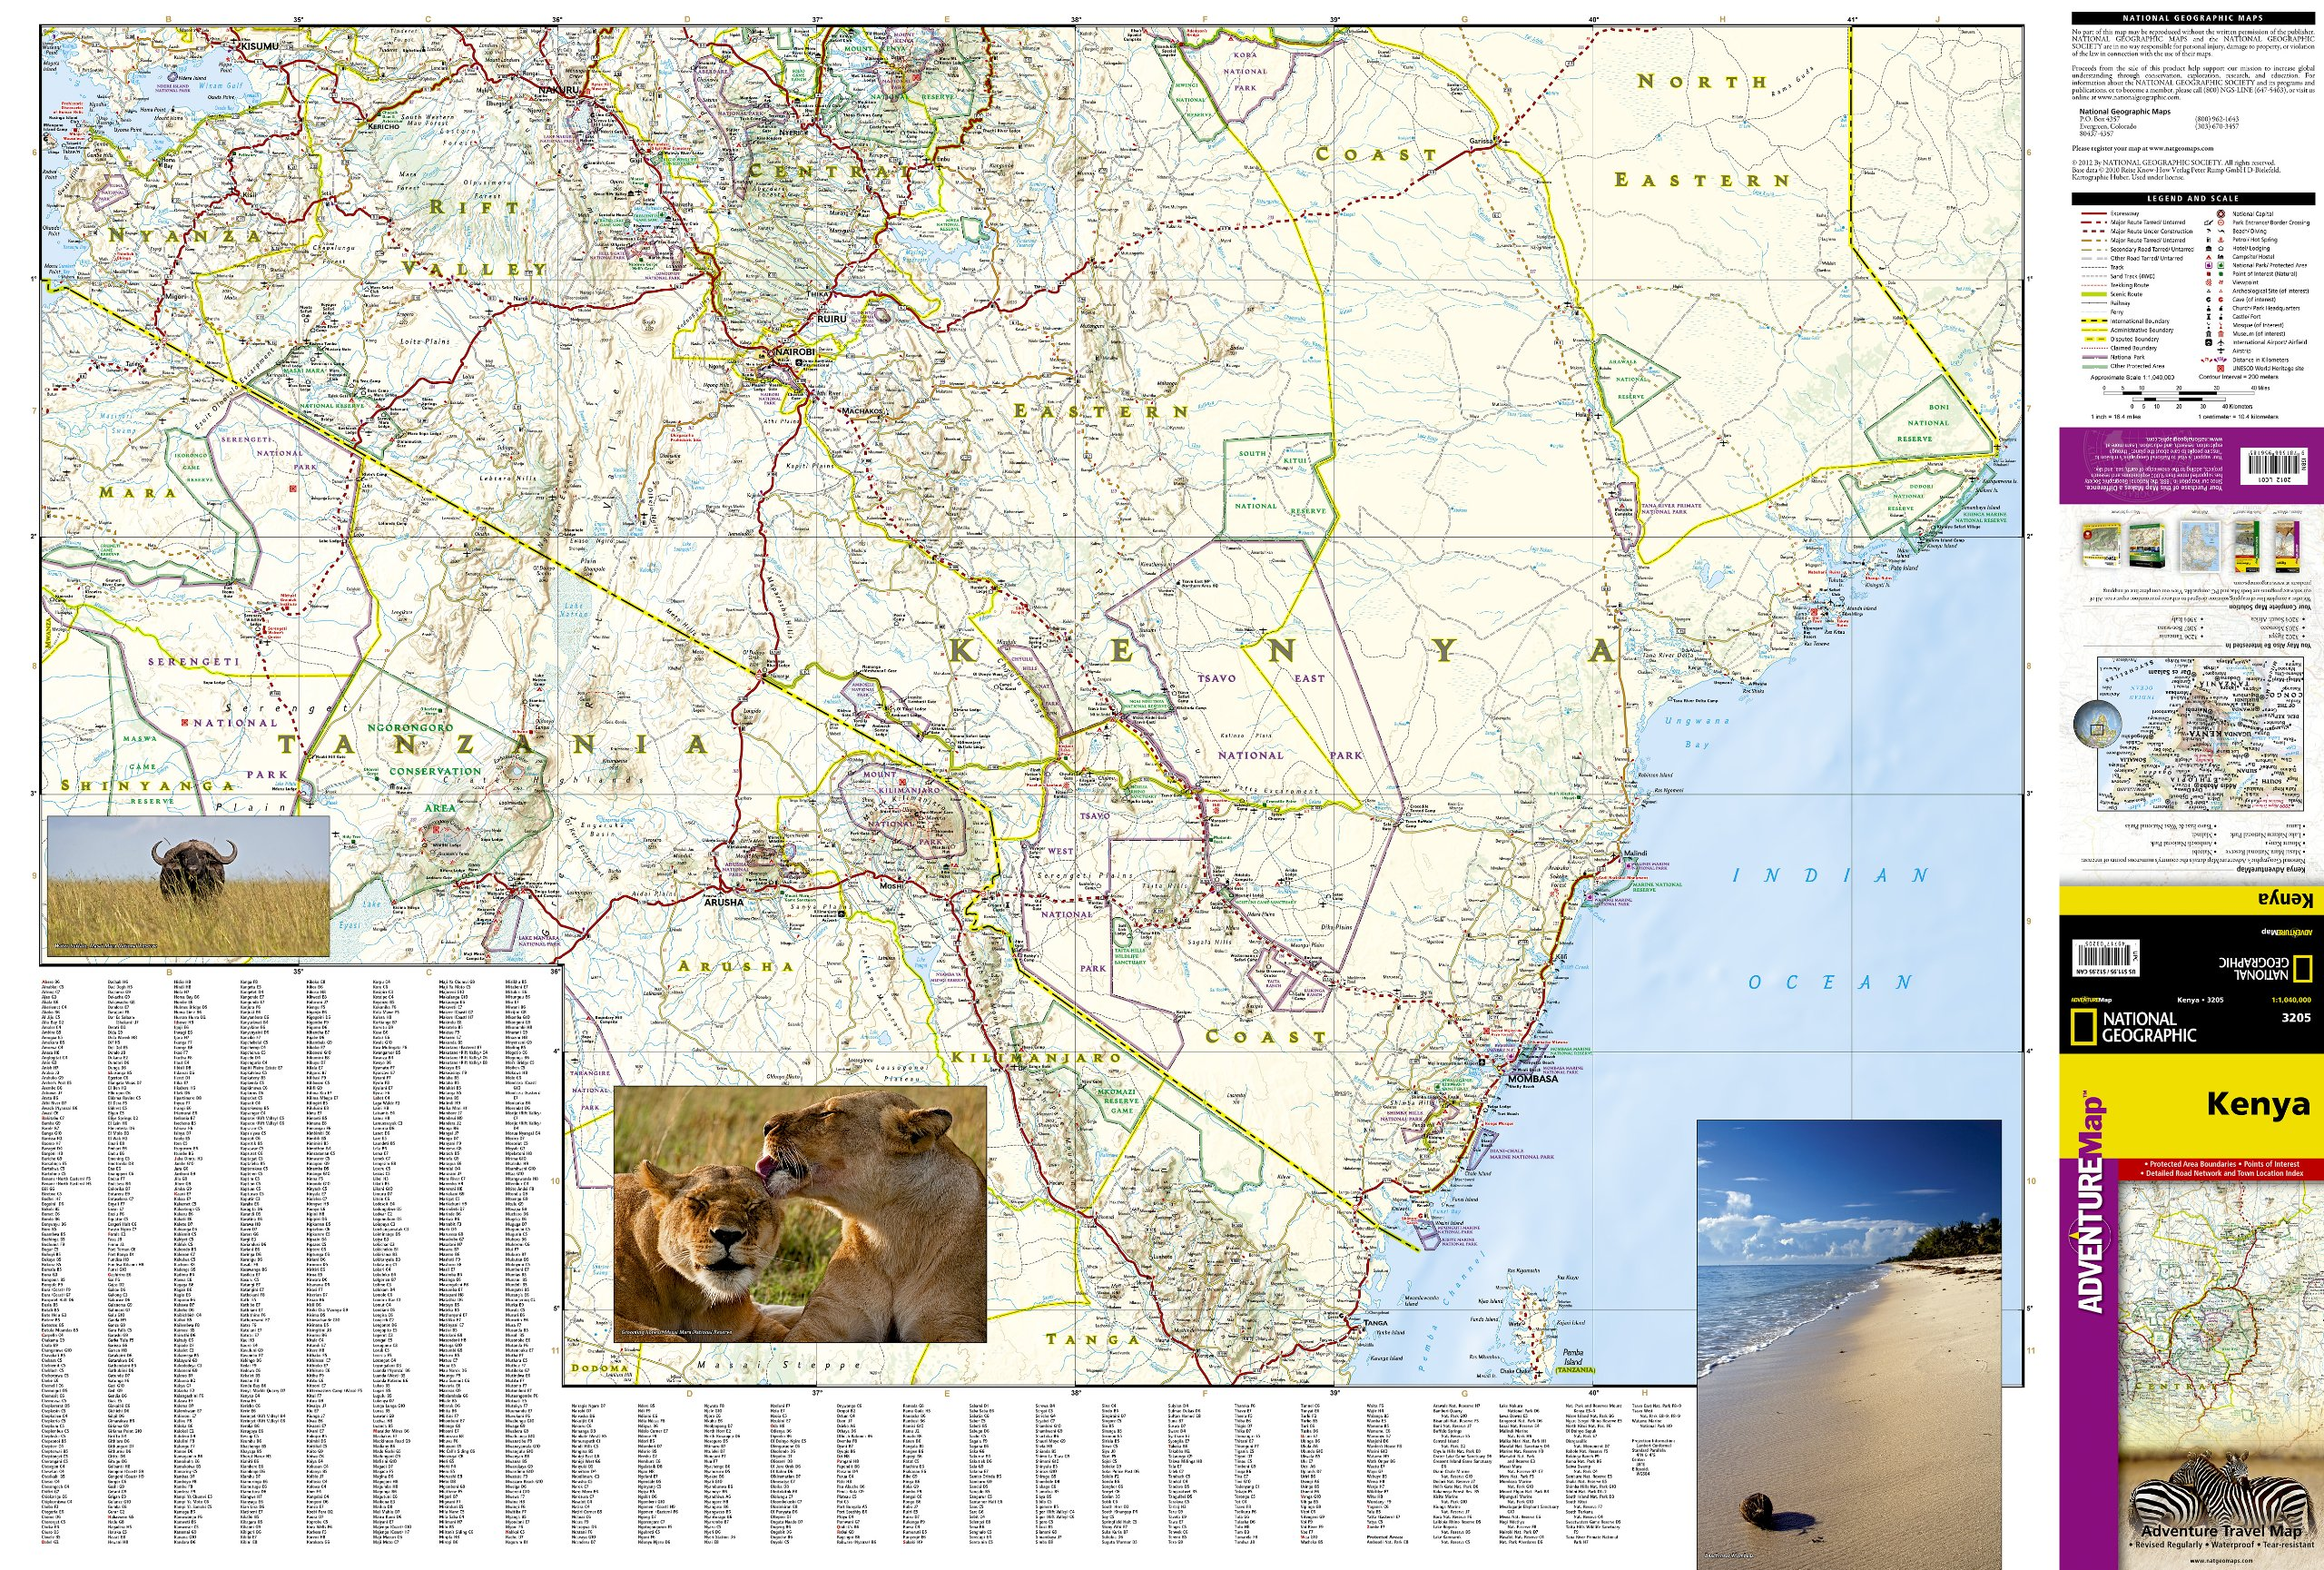 Kenya national geographic adventure map national geographic maps kenya national geographic adventure map national geographic maps adventure 0749717032057 amazon books gumiabroncs Choice Image